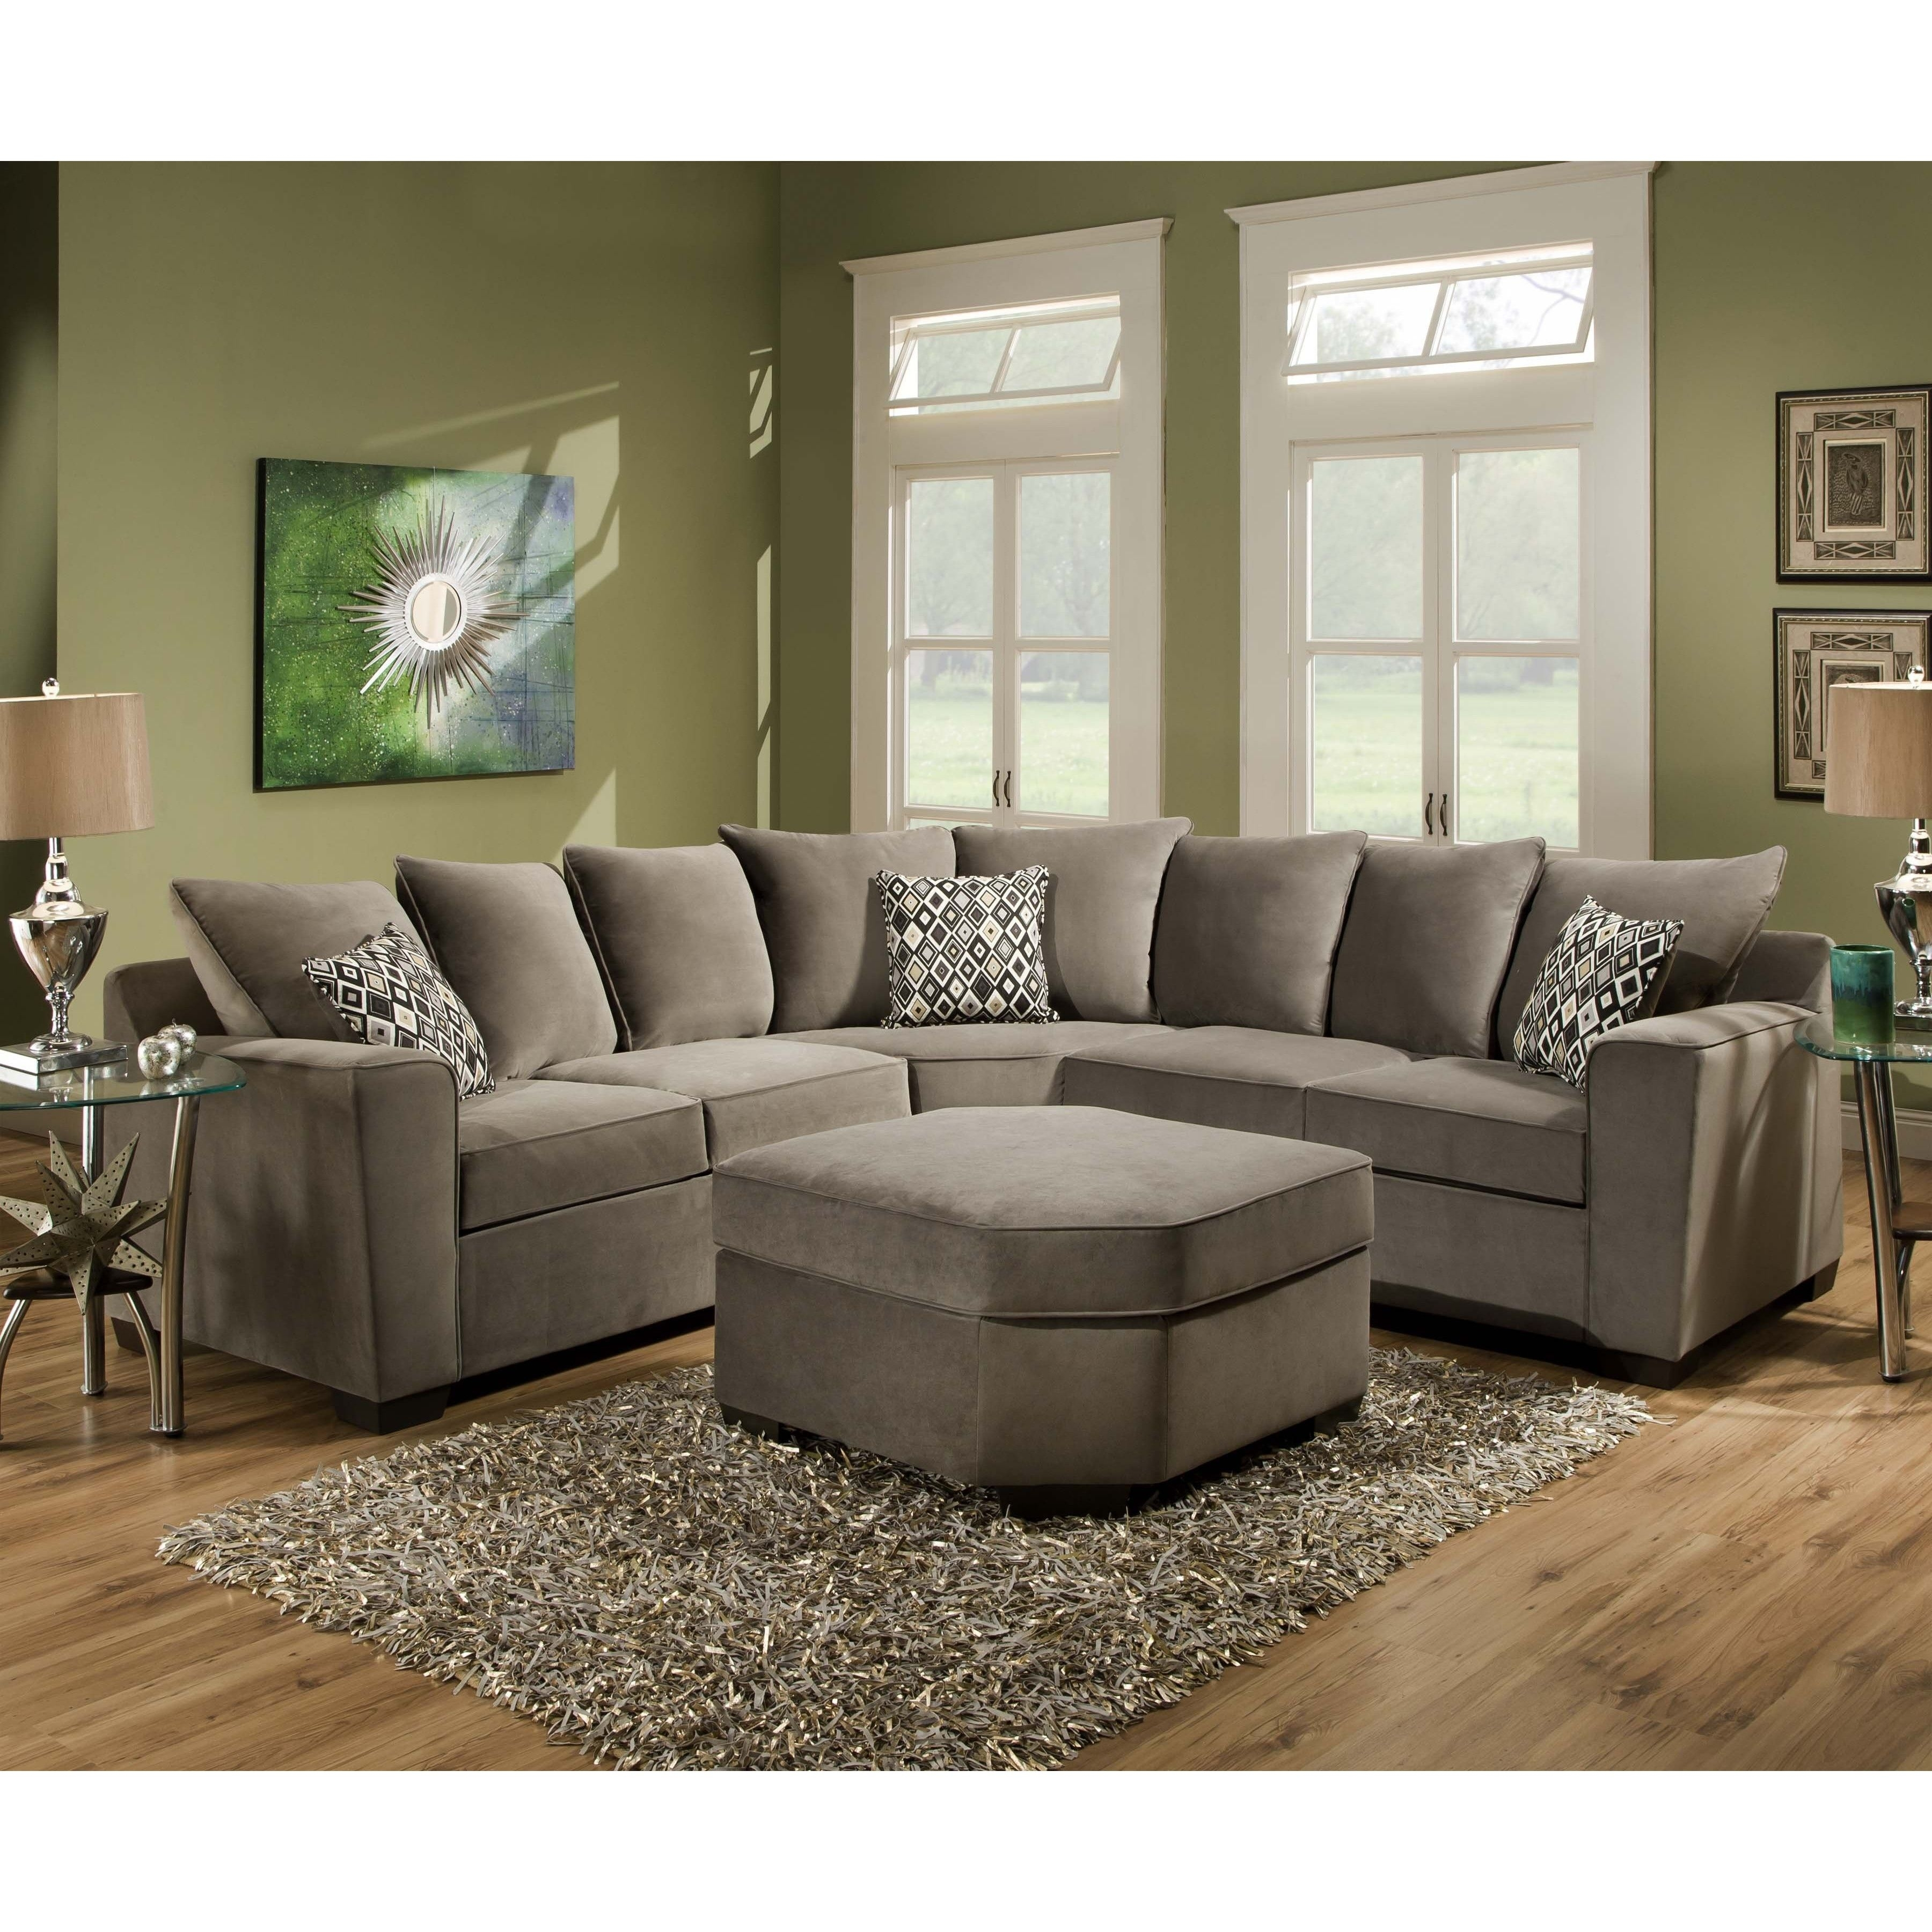 Featured Image of Roanoke Va Sectional Sofas